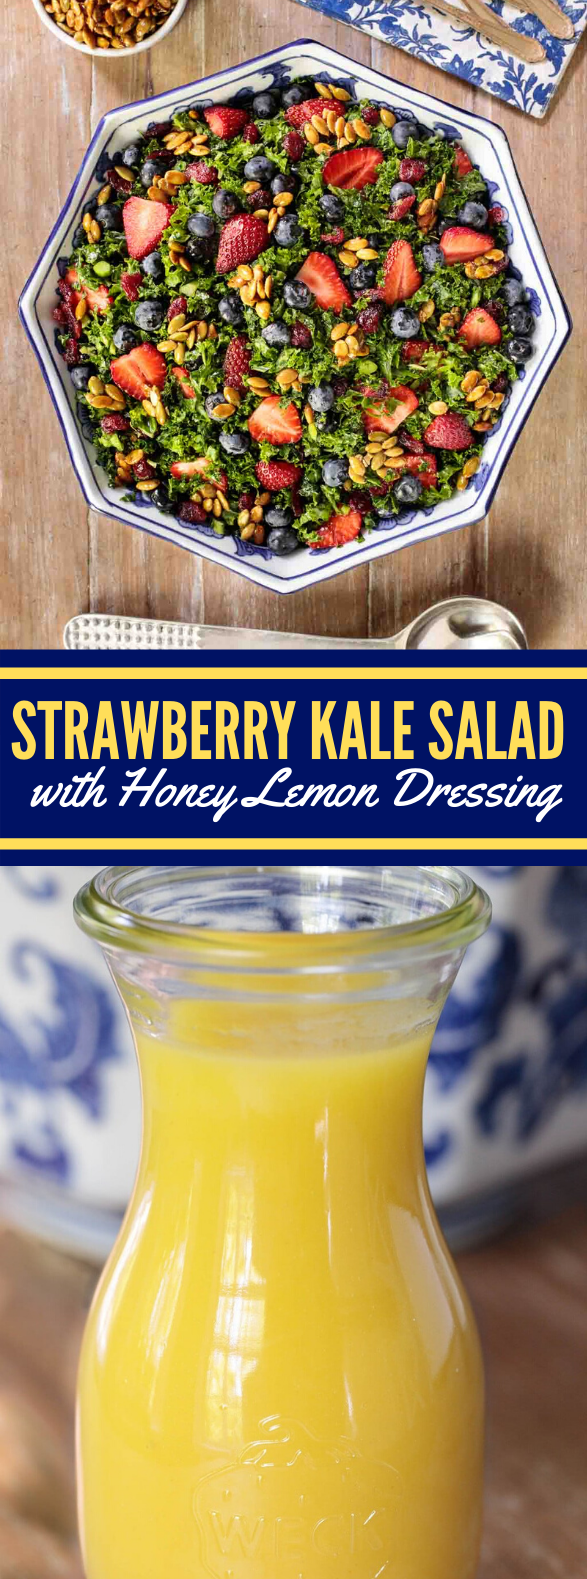 Strawberry Kale Salad with Honey Lemon Dressing #vegetarian #summerrecipes